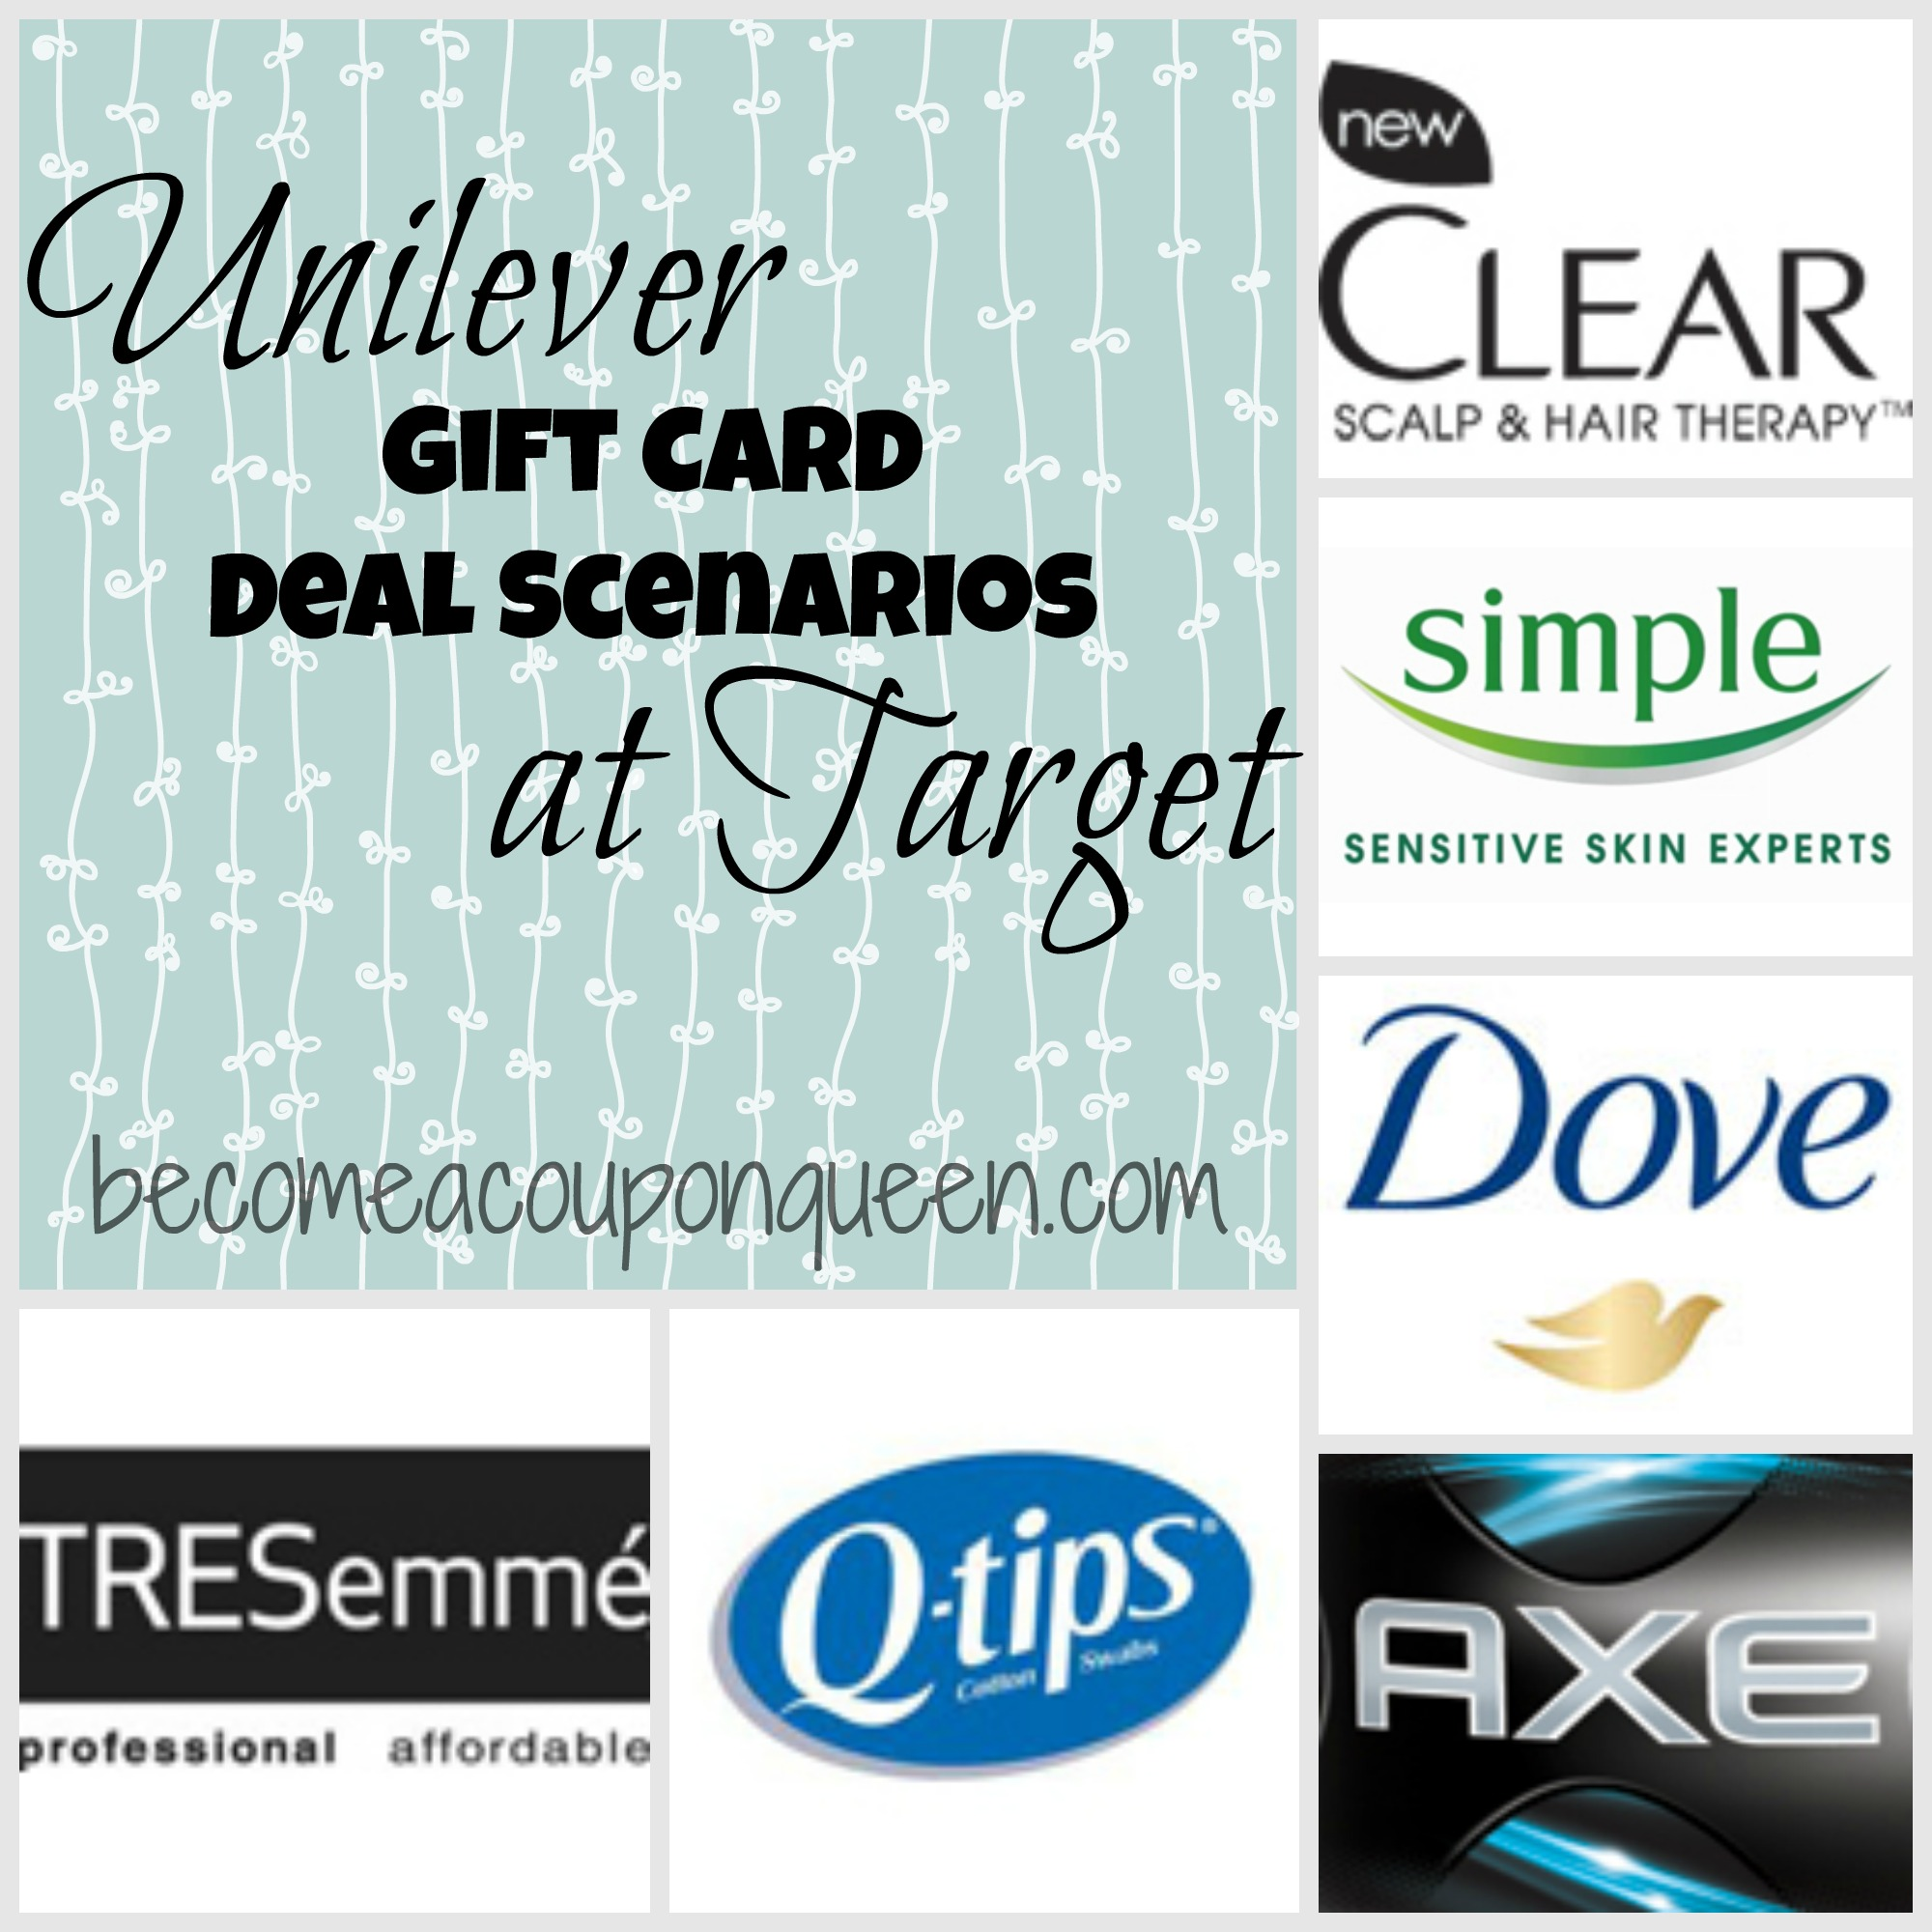 unilever gift card deal scenarios at target - Christmas Gift Card Deals